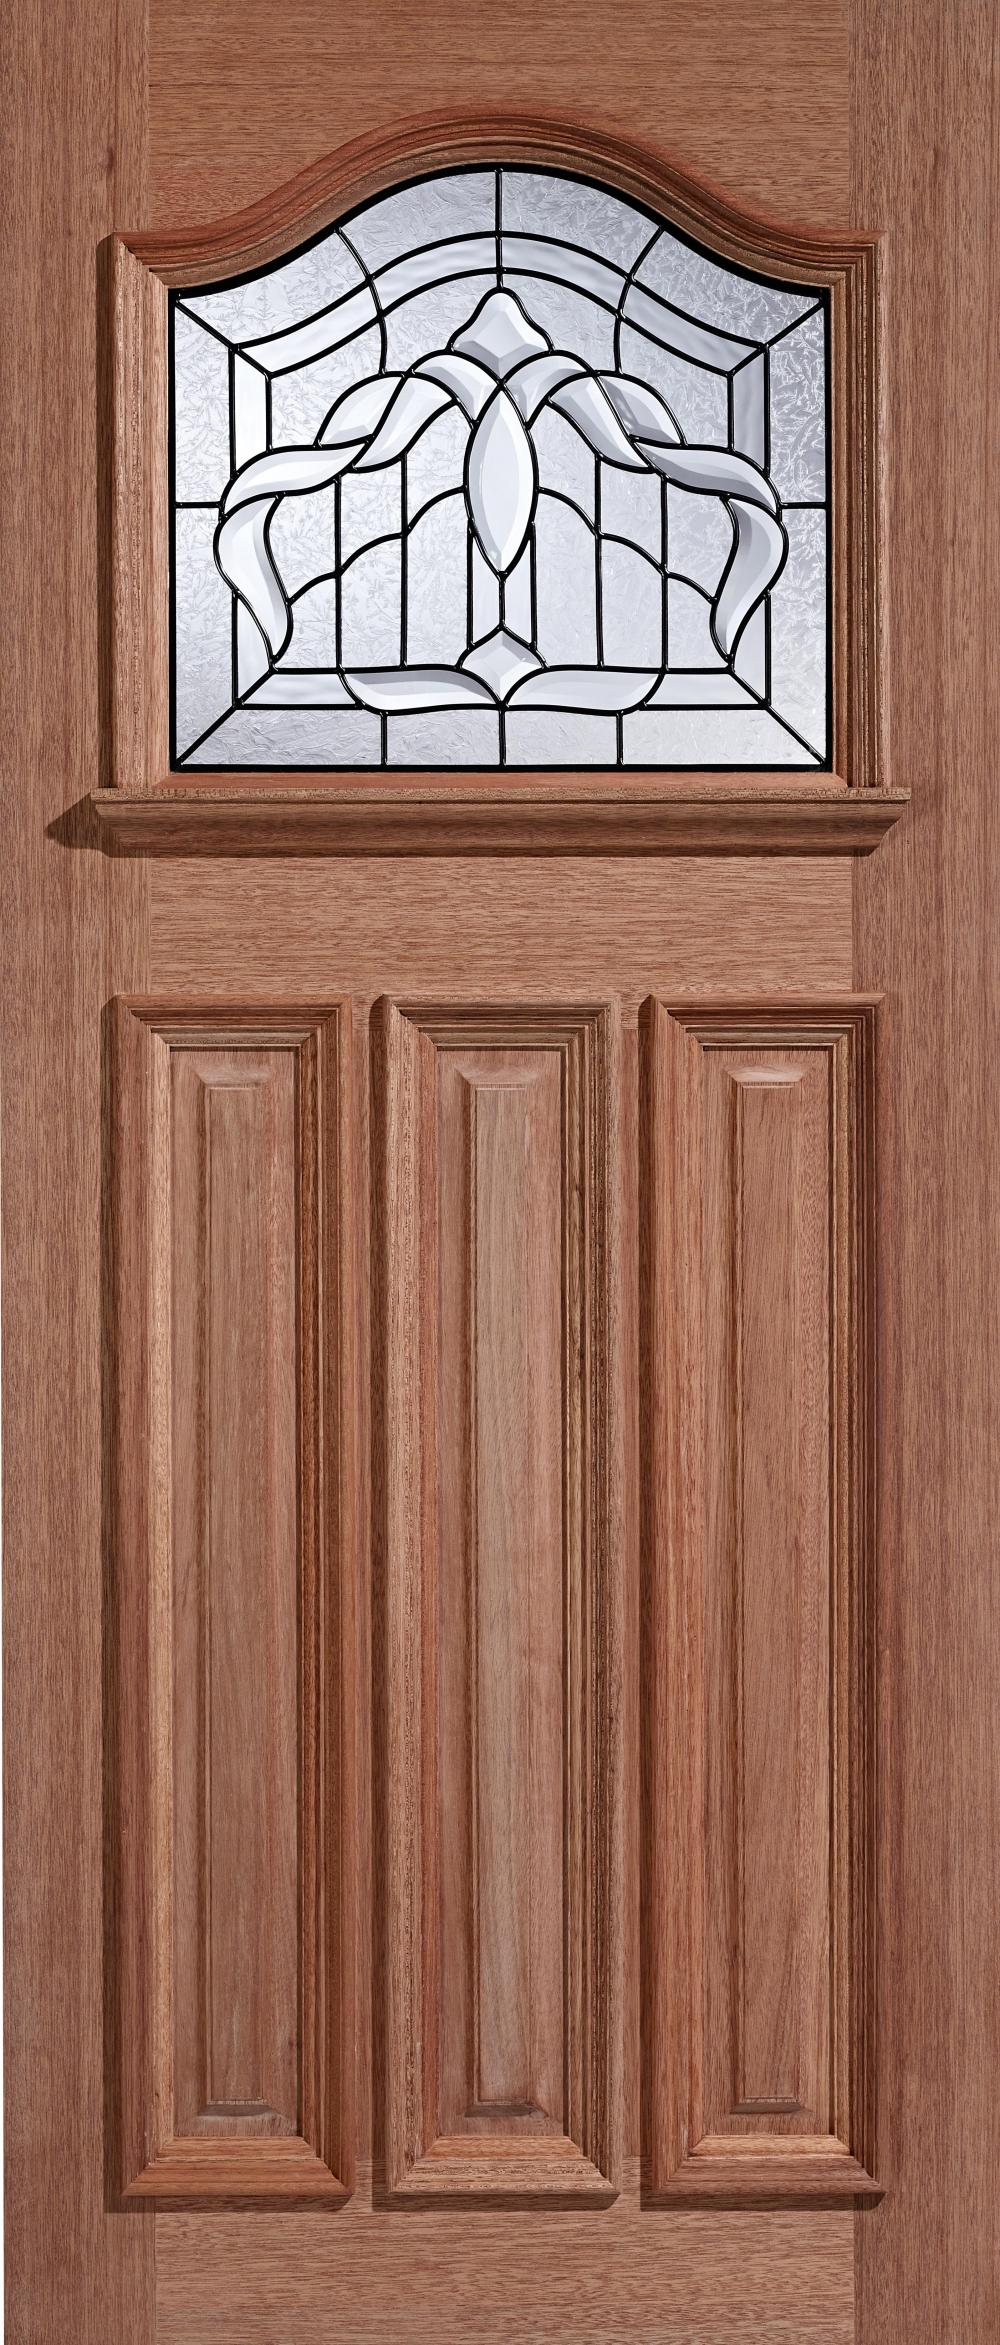 Estate crown hardwood exterior door blueprint joinery for Hardwood entrance doors